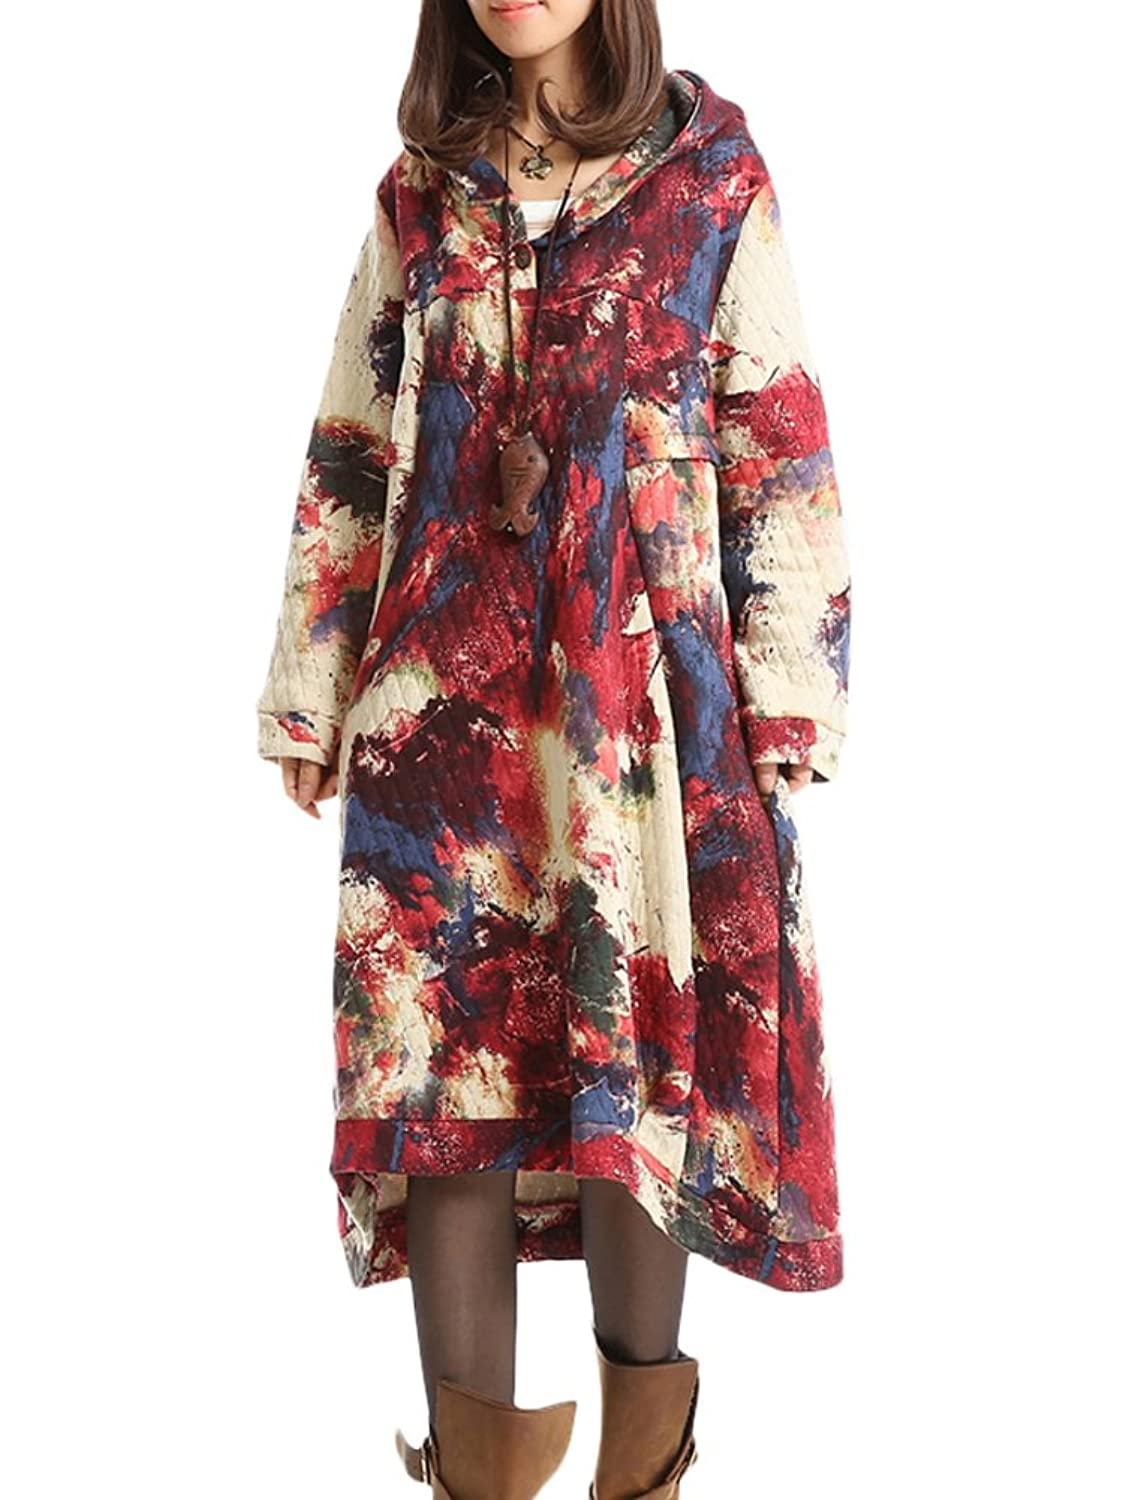 MatchLife Women's New Casual Hoodie Printed Patchwork Spring Dress